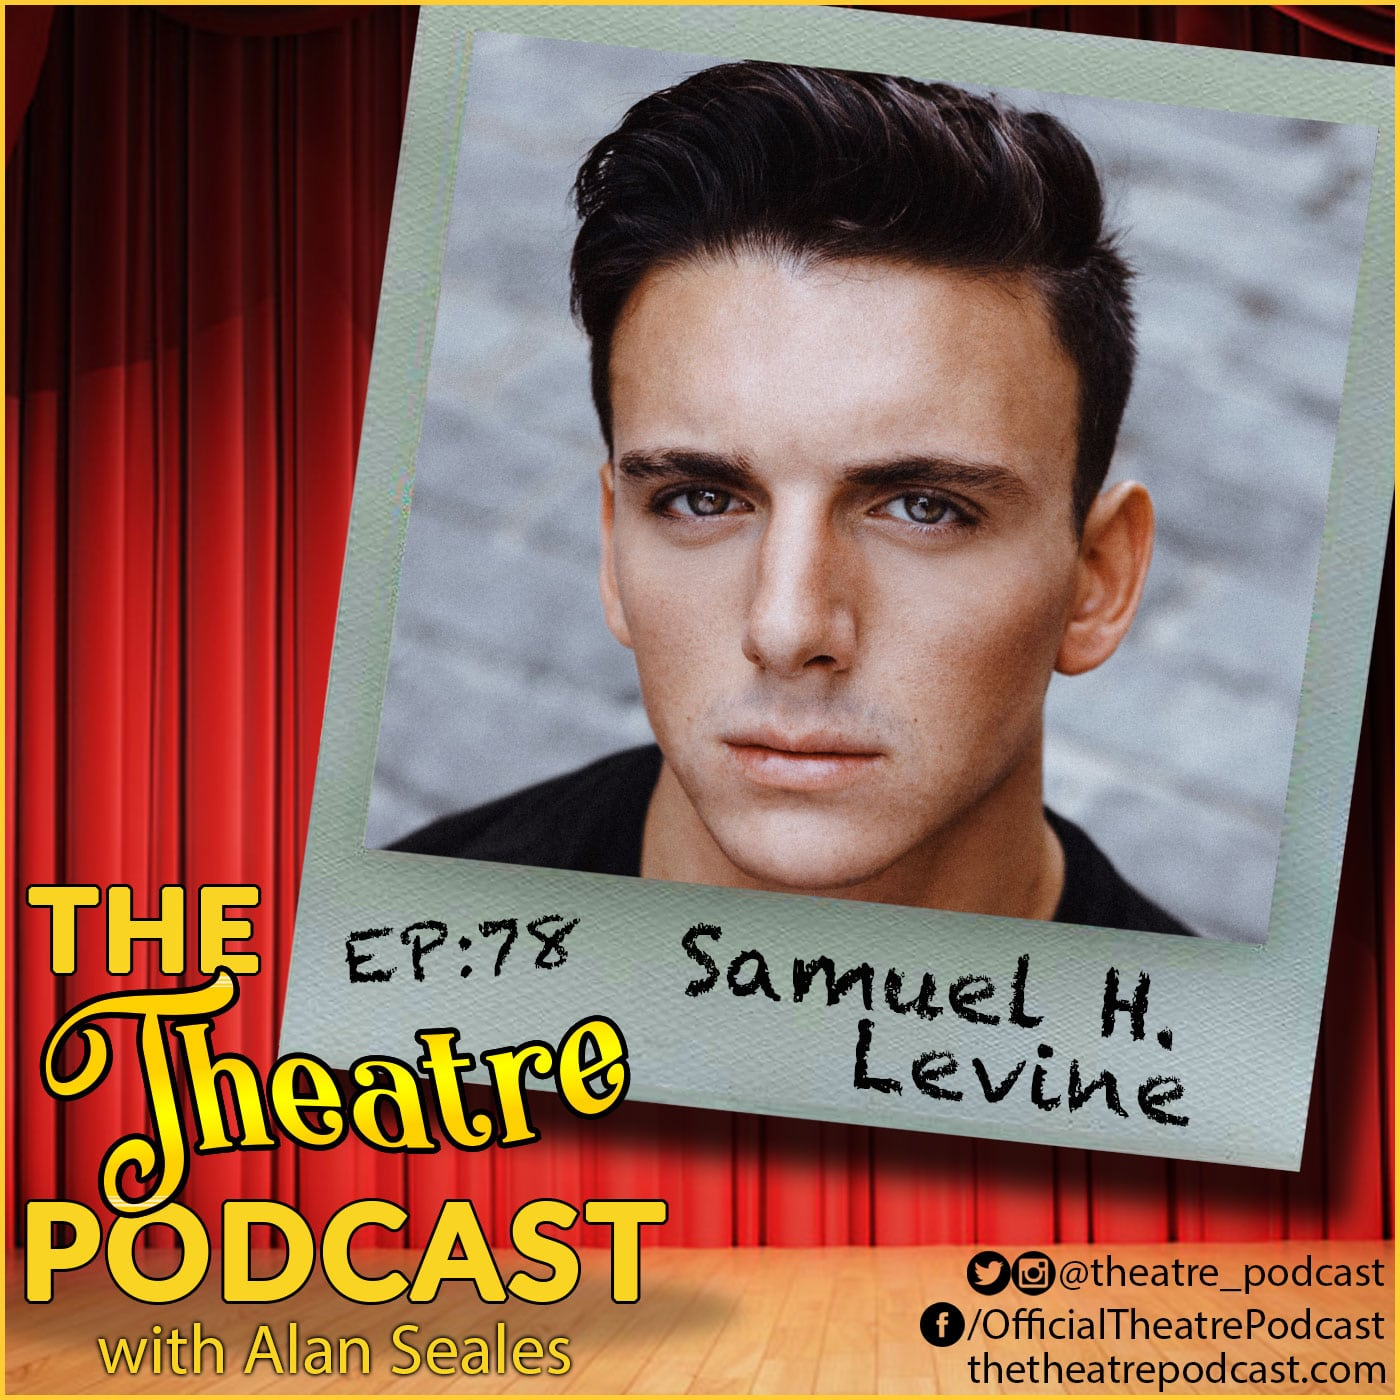 The Theatre Podcast with Alan Seales - Ep78 - Samuel H. Levine, The Inheritance